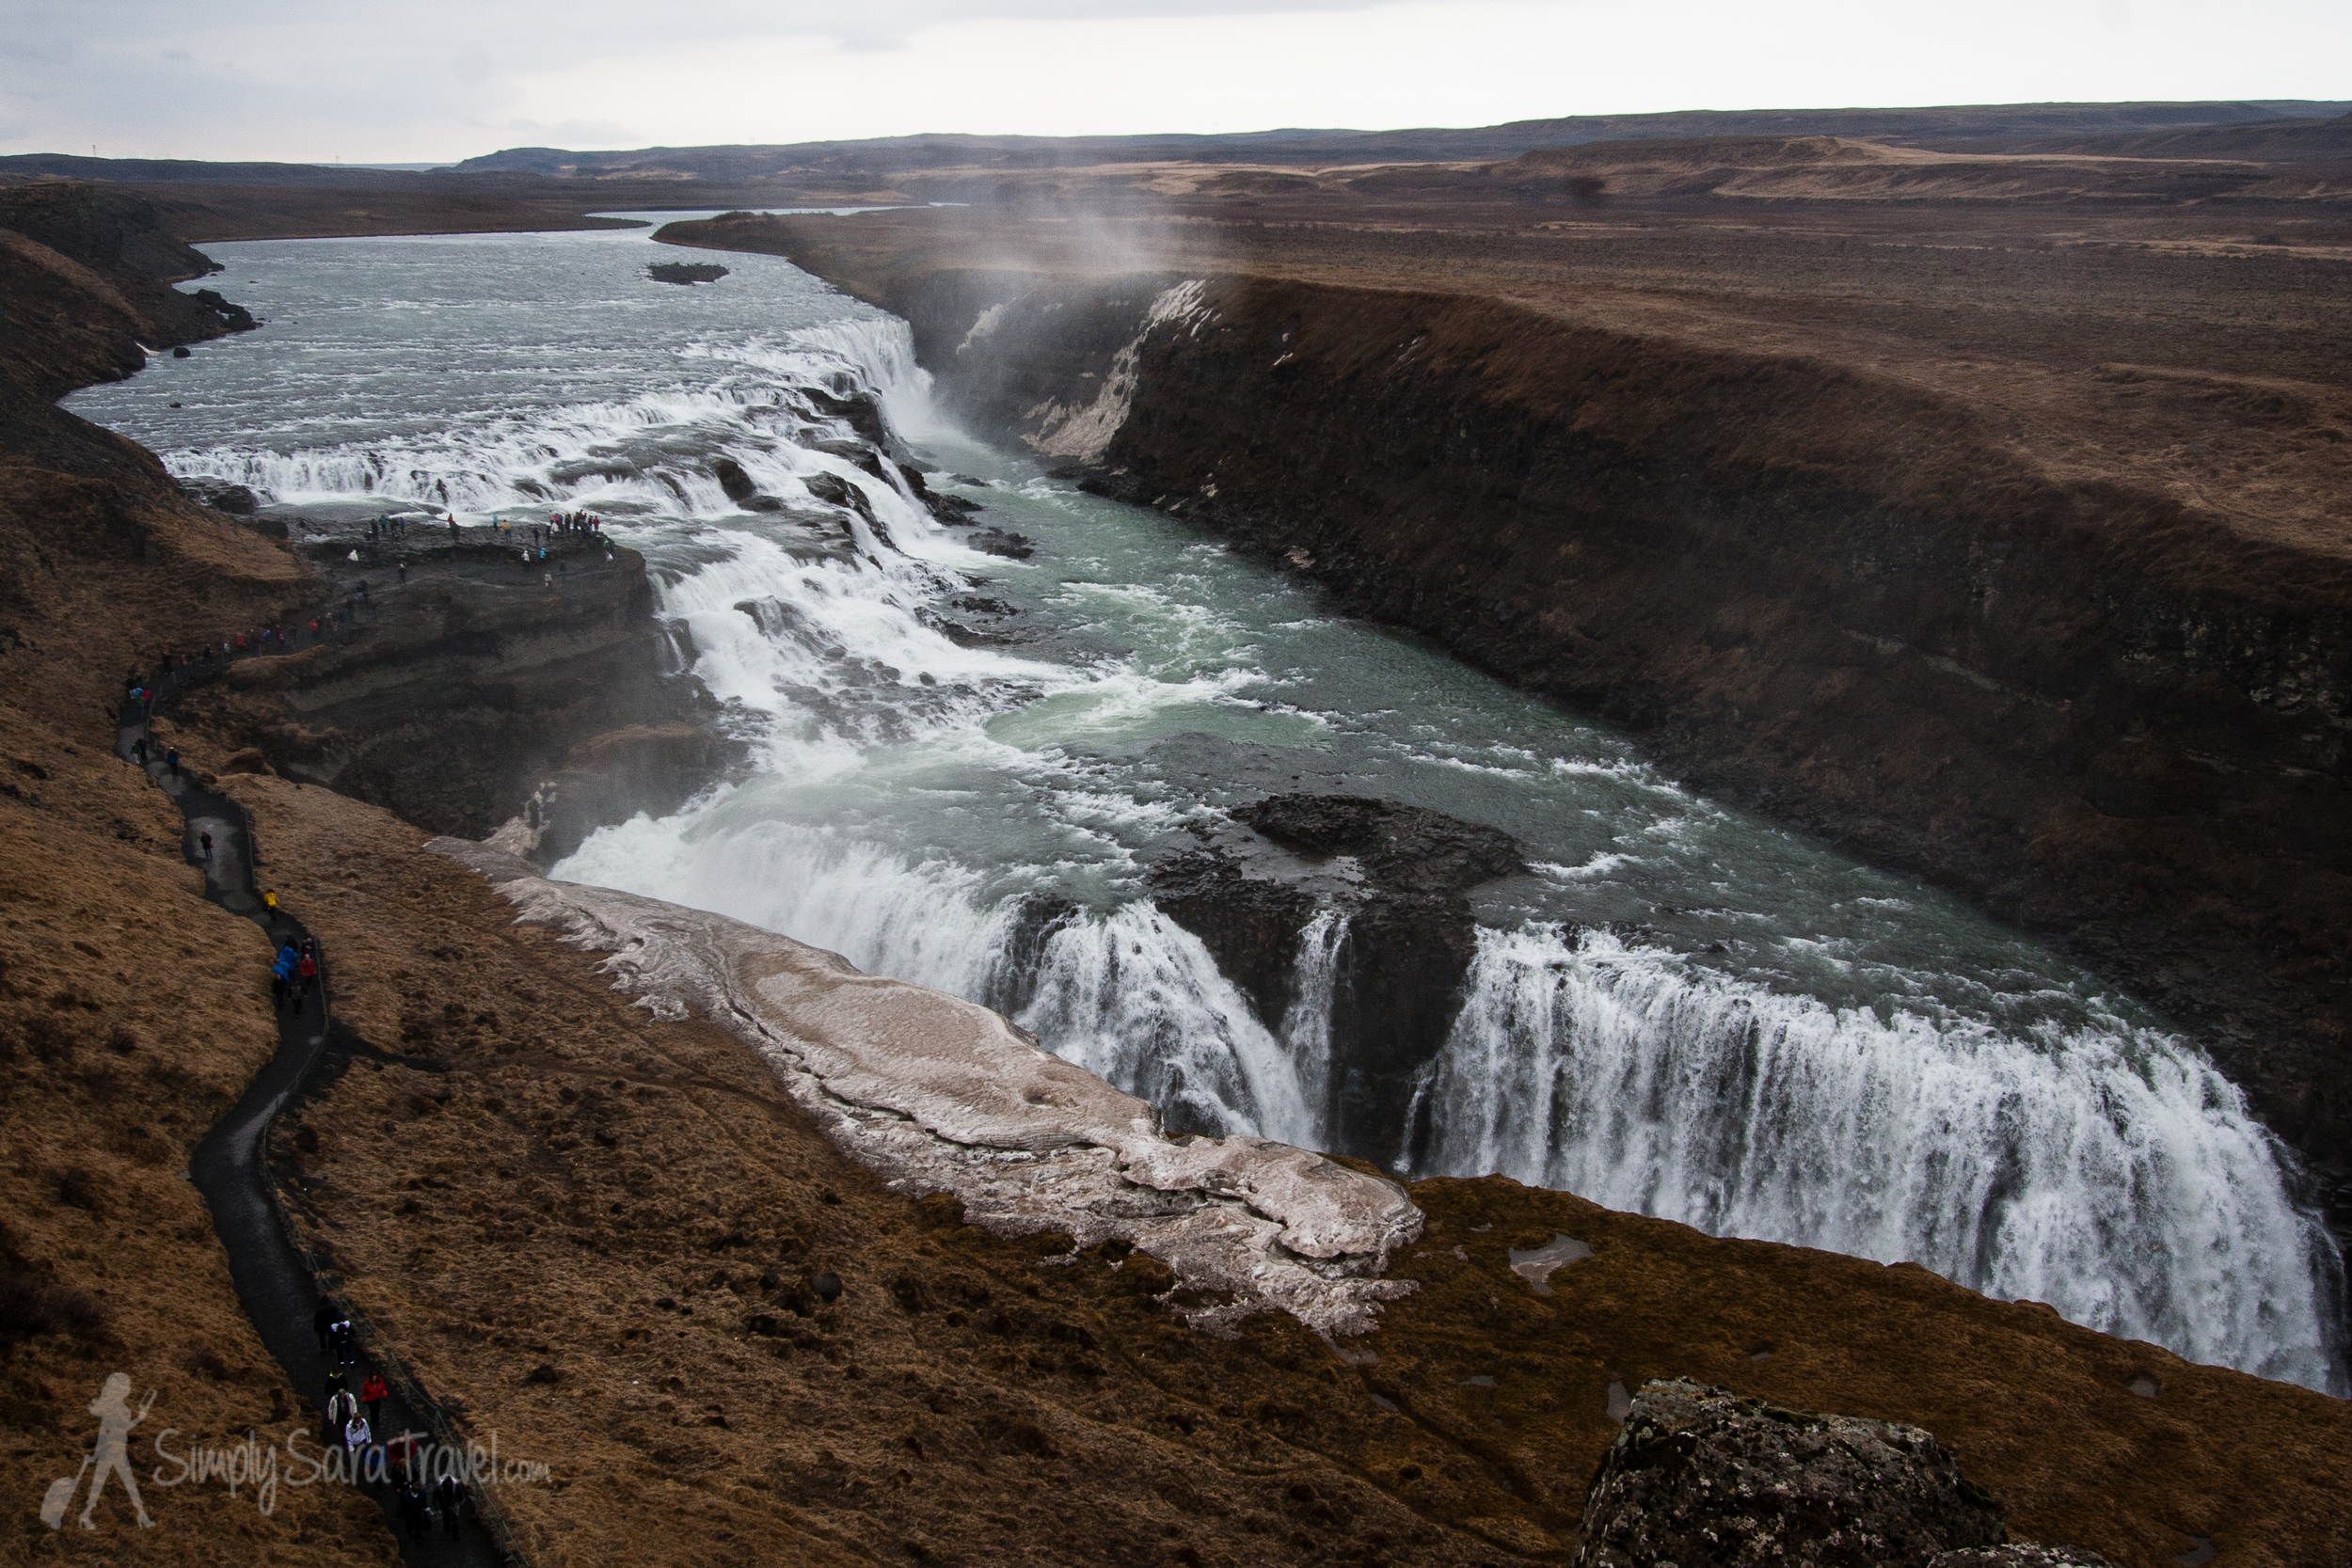 One of Iceland's star attractions: the tiered waterfall of Gullfoss